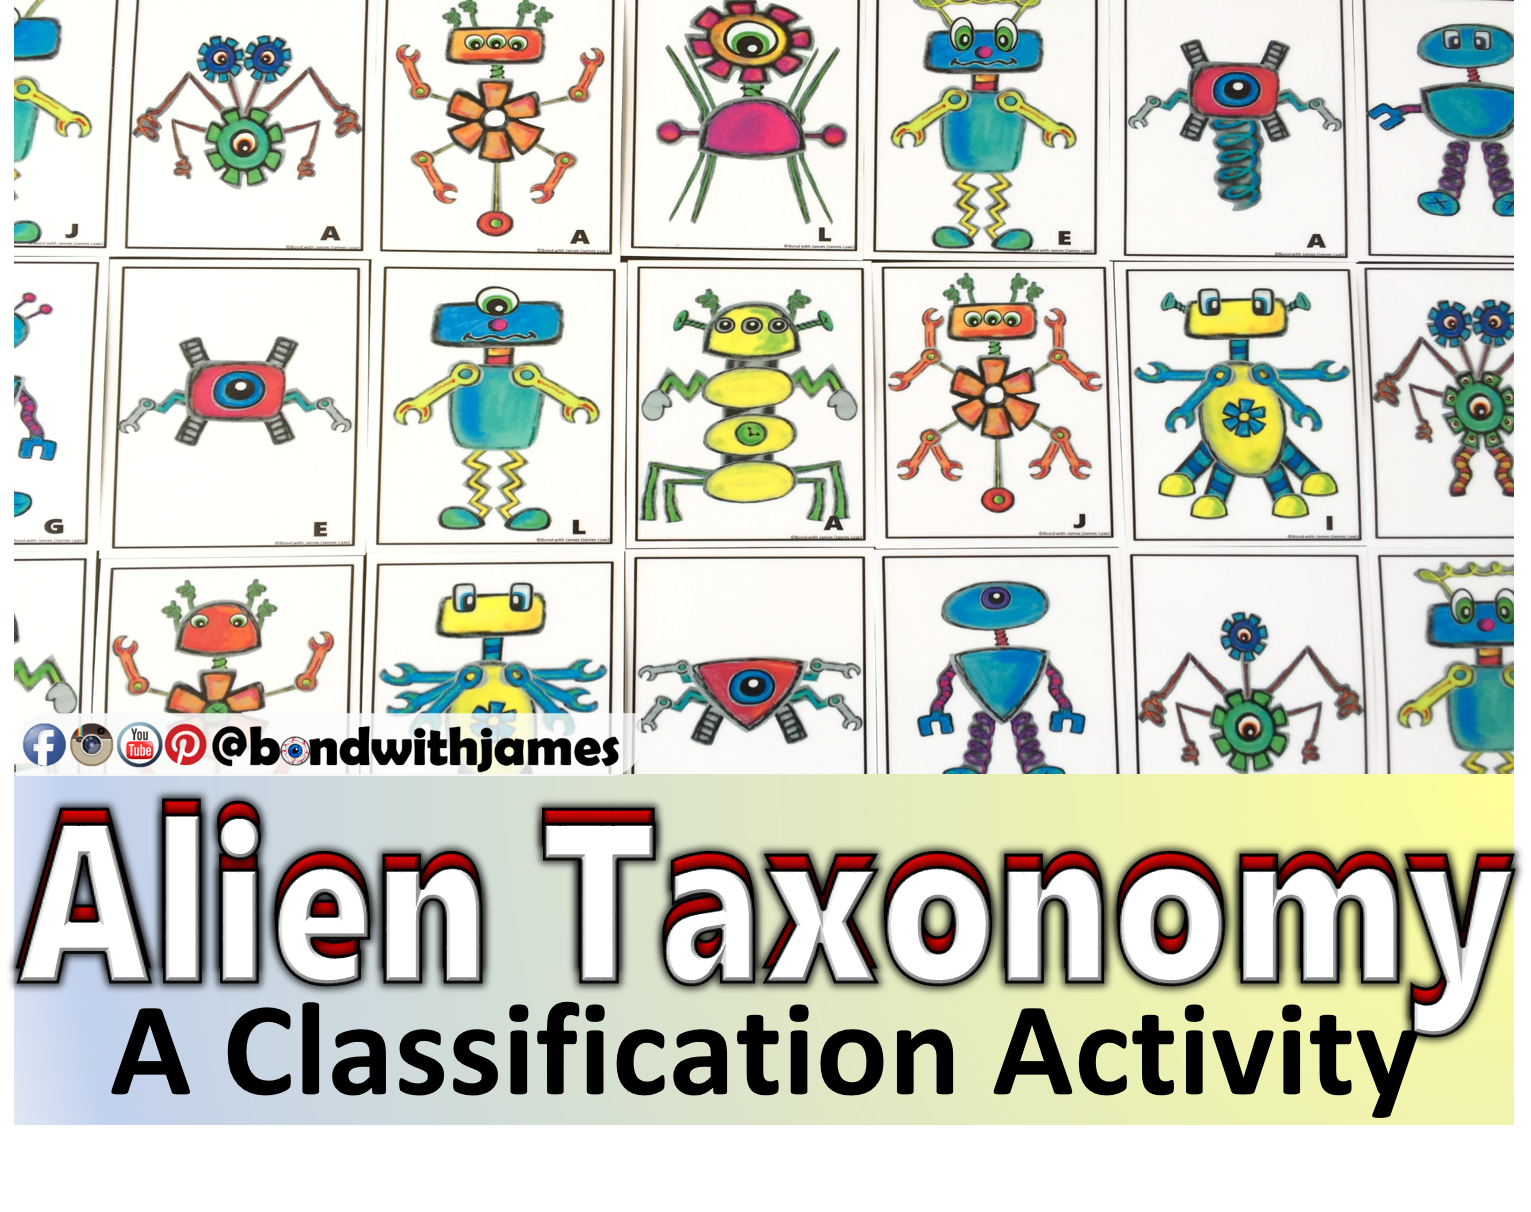 worksheet Dichotomous Key Worksheet Aliens alien taxonomy a classification card sort activity activities activity